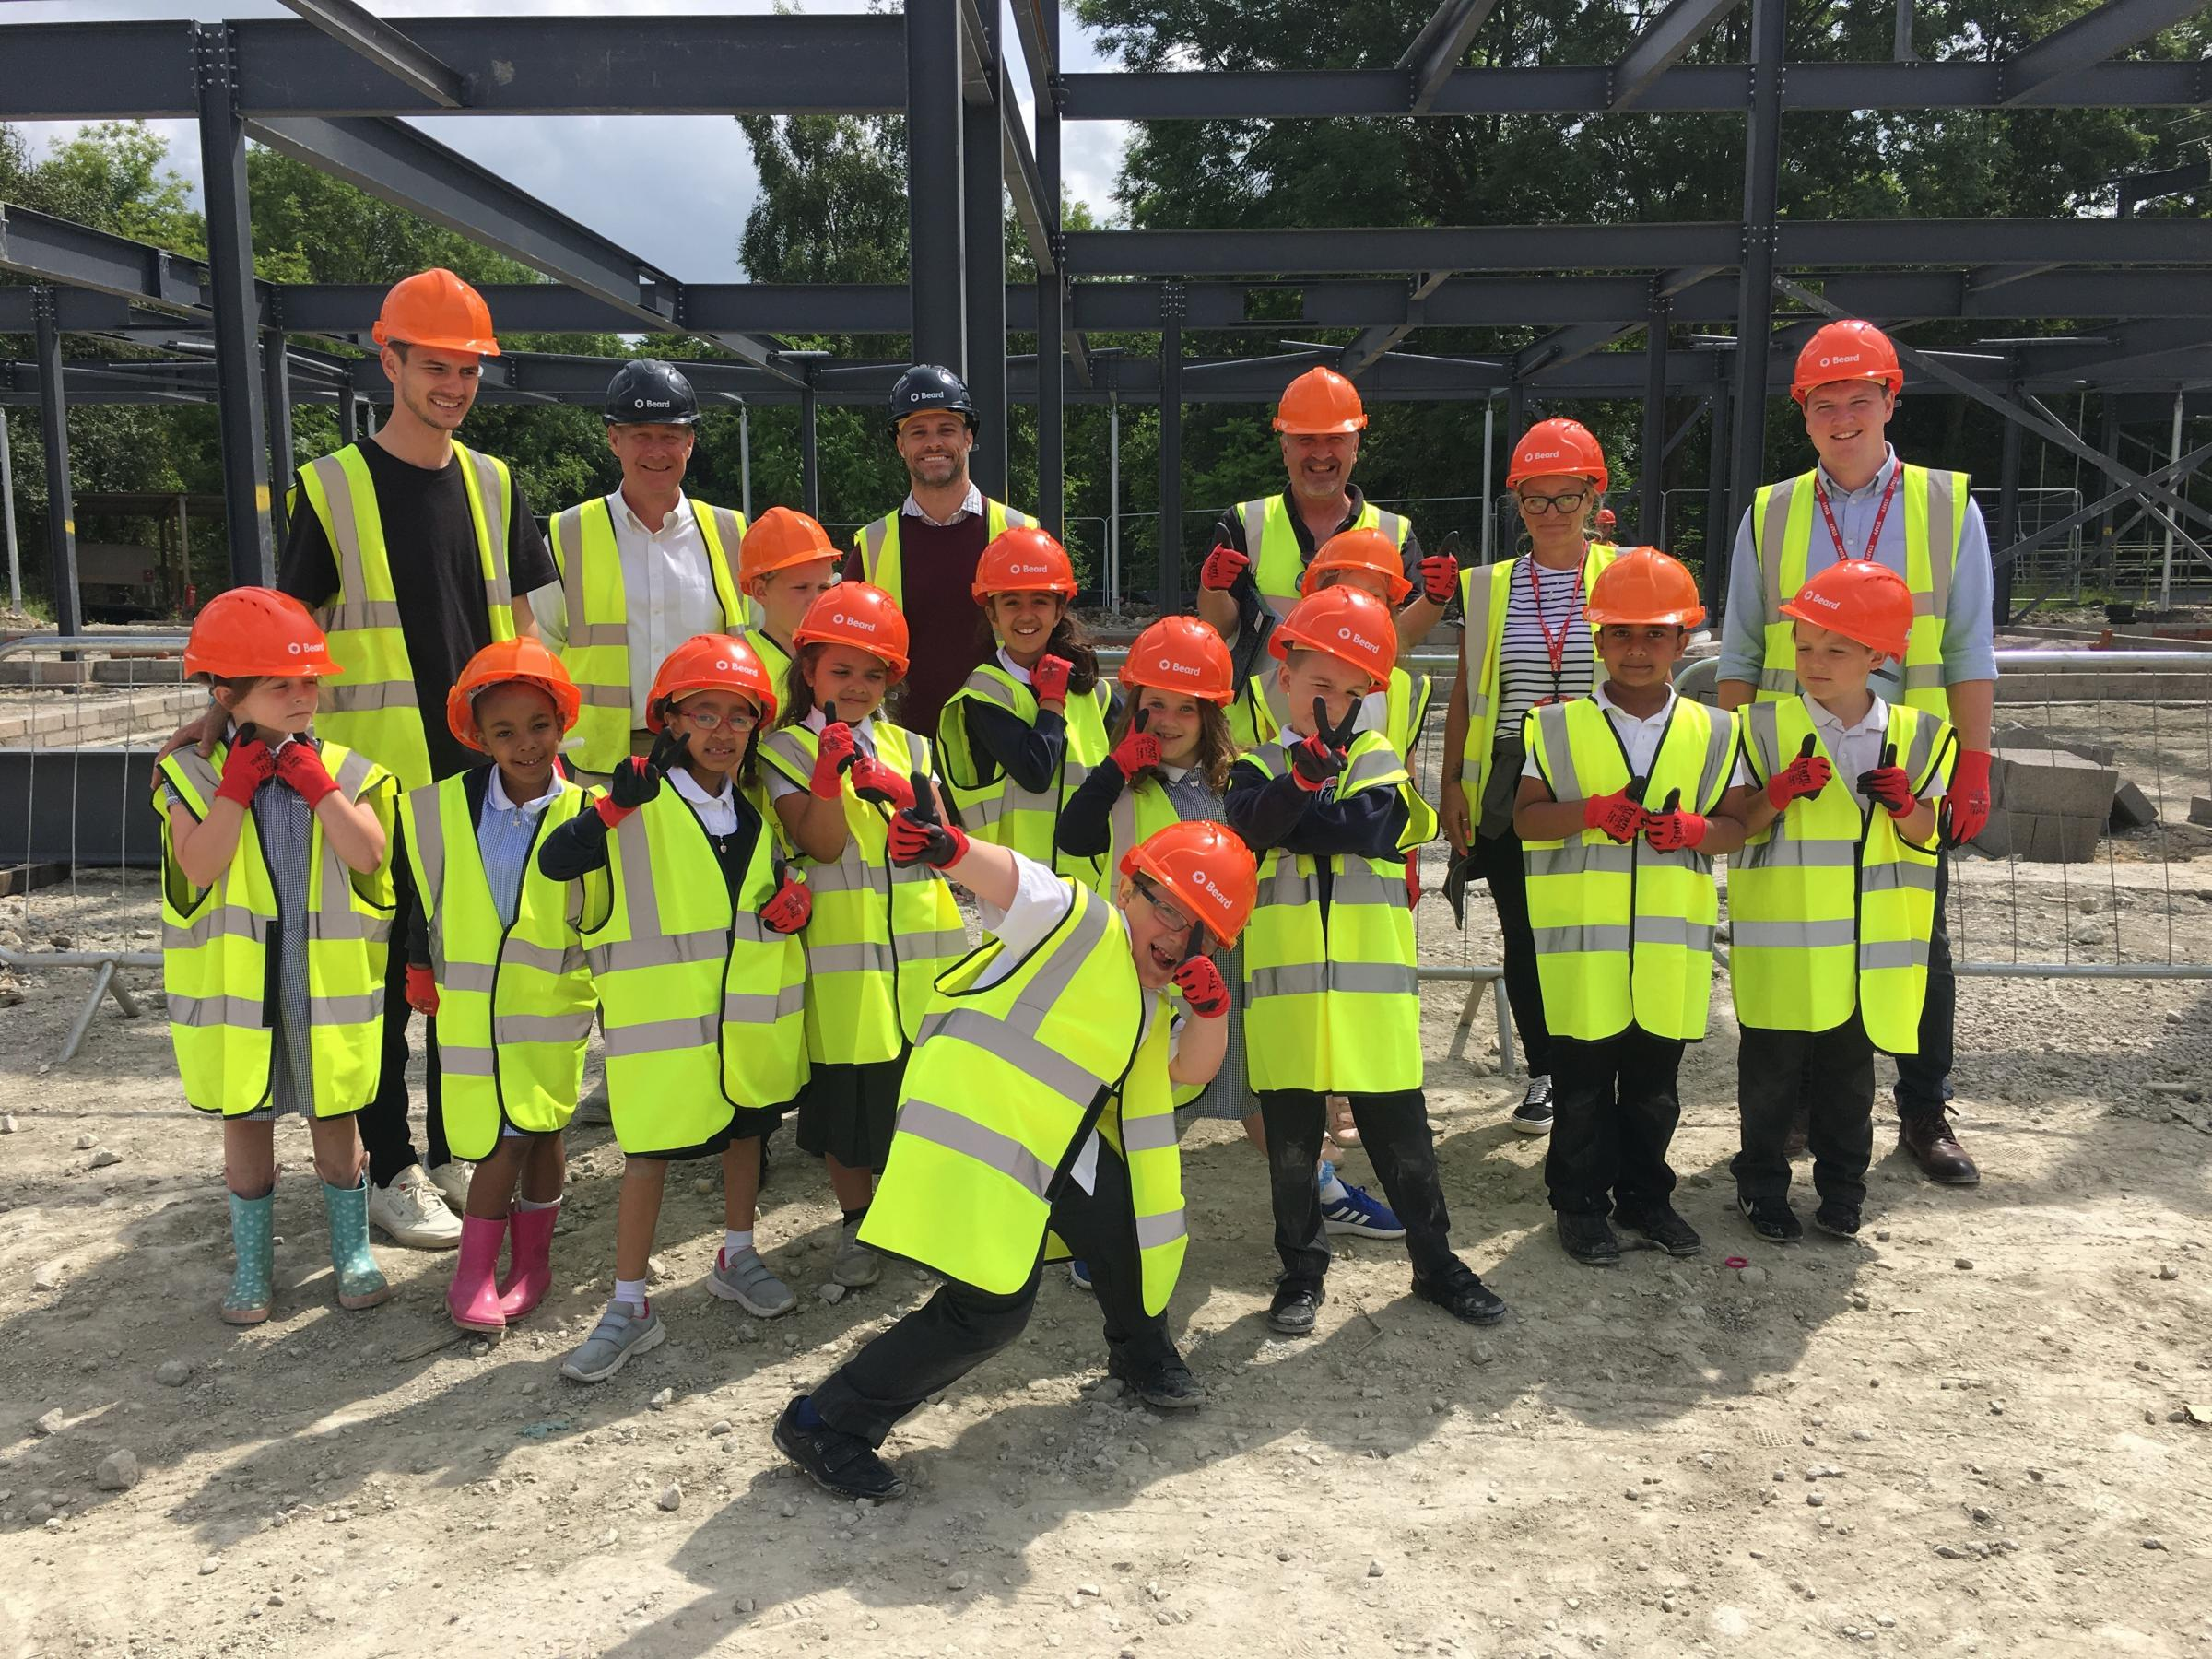 EXCLUSIVE: Pupils from Wood Farm Primary School get an exciting sneak peak the work happening in the new Science Oxford Education Centre development site on Quarry Road.